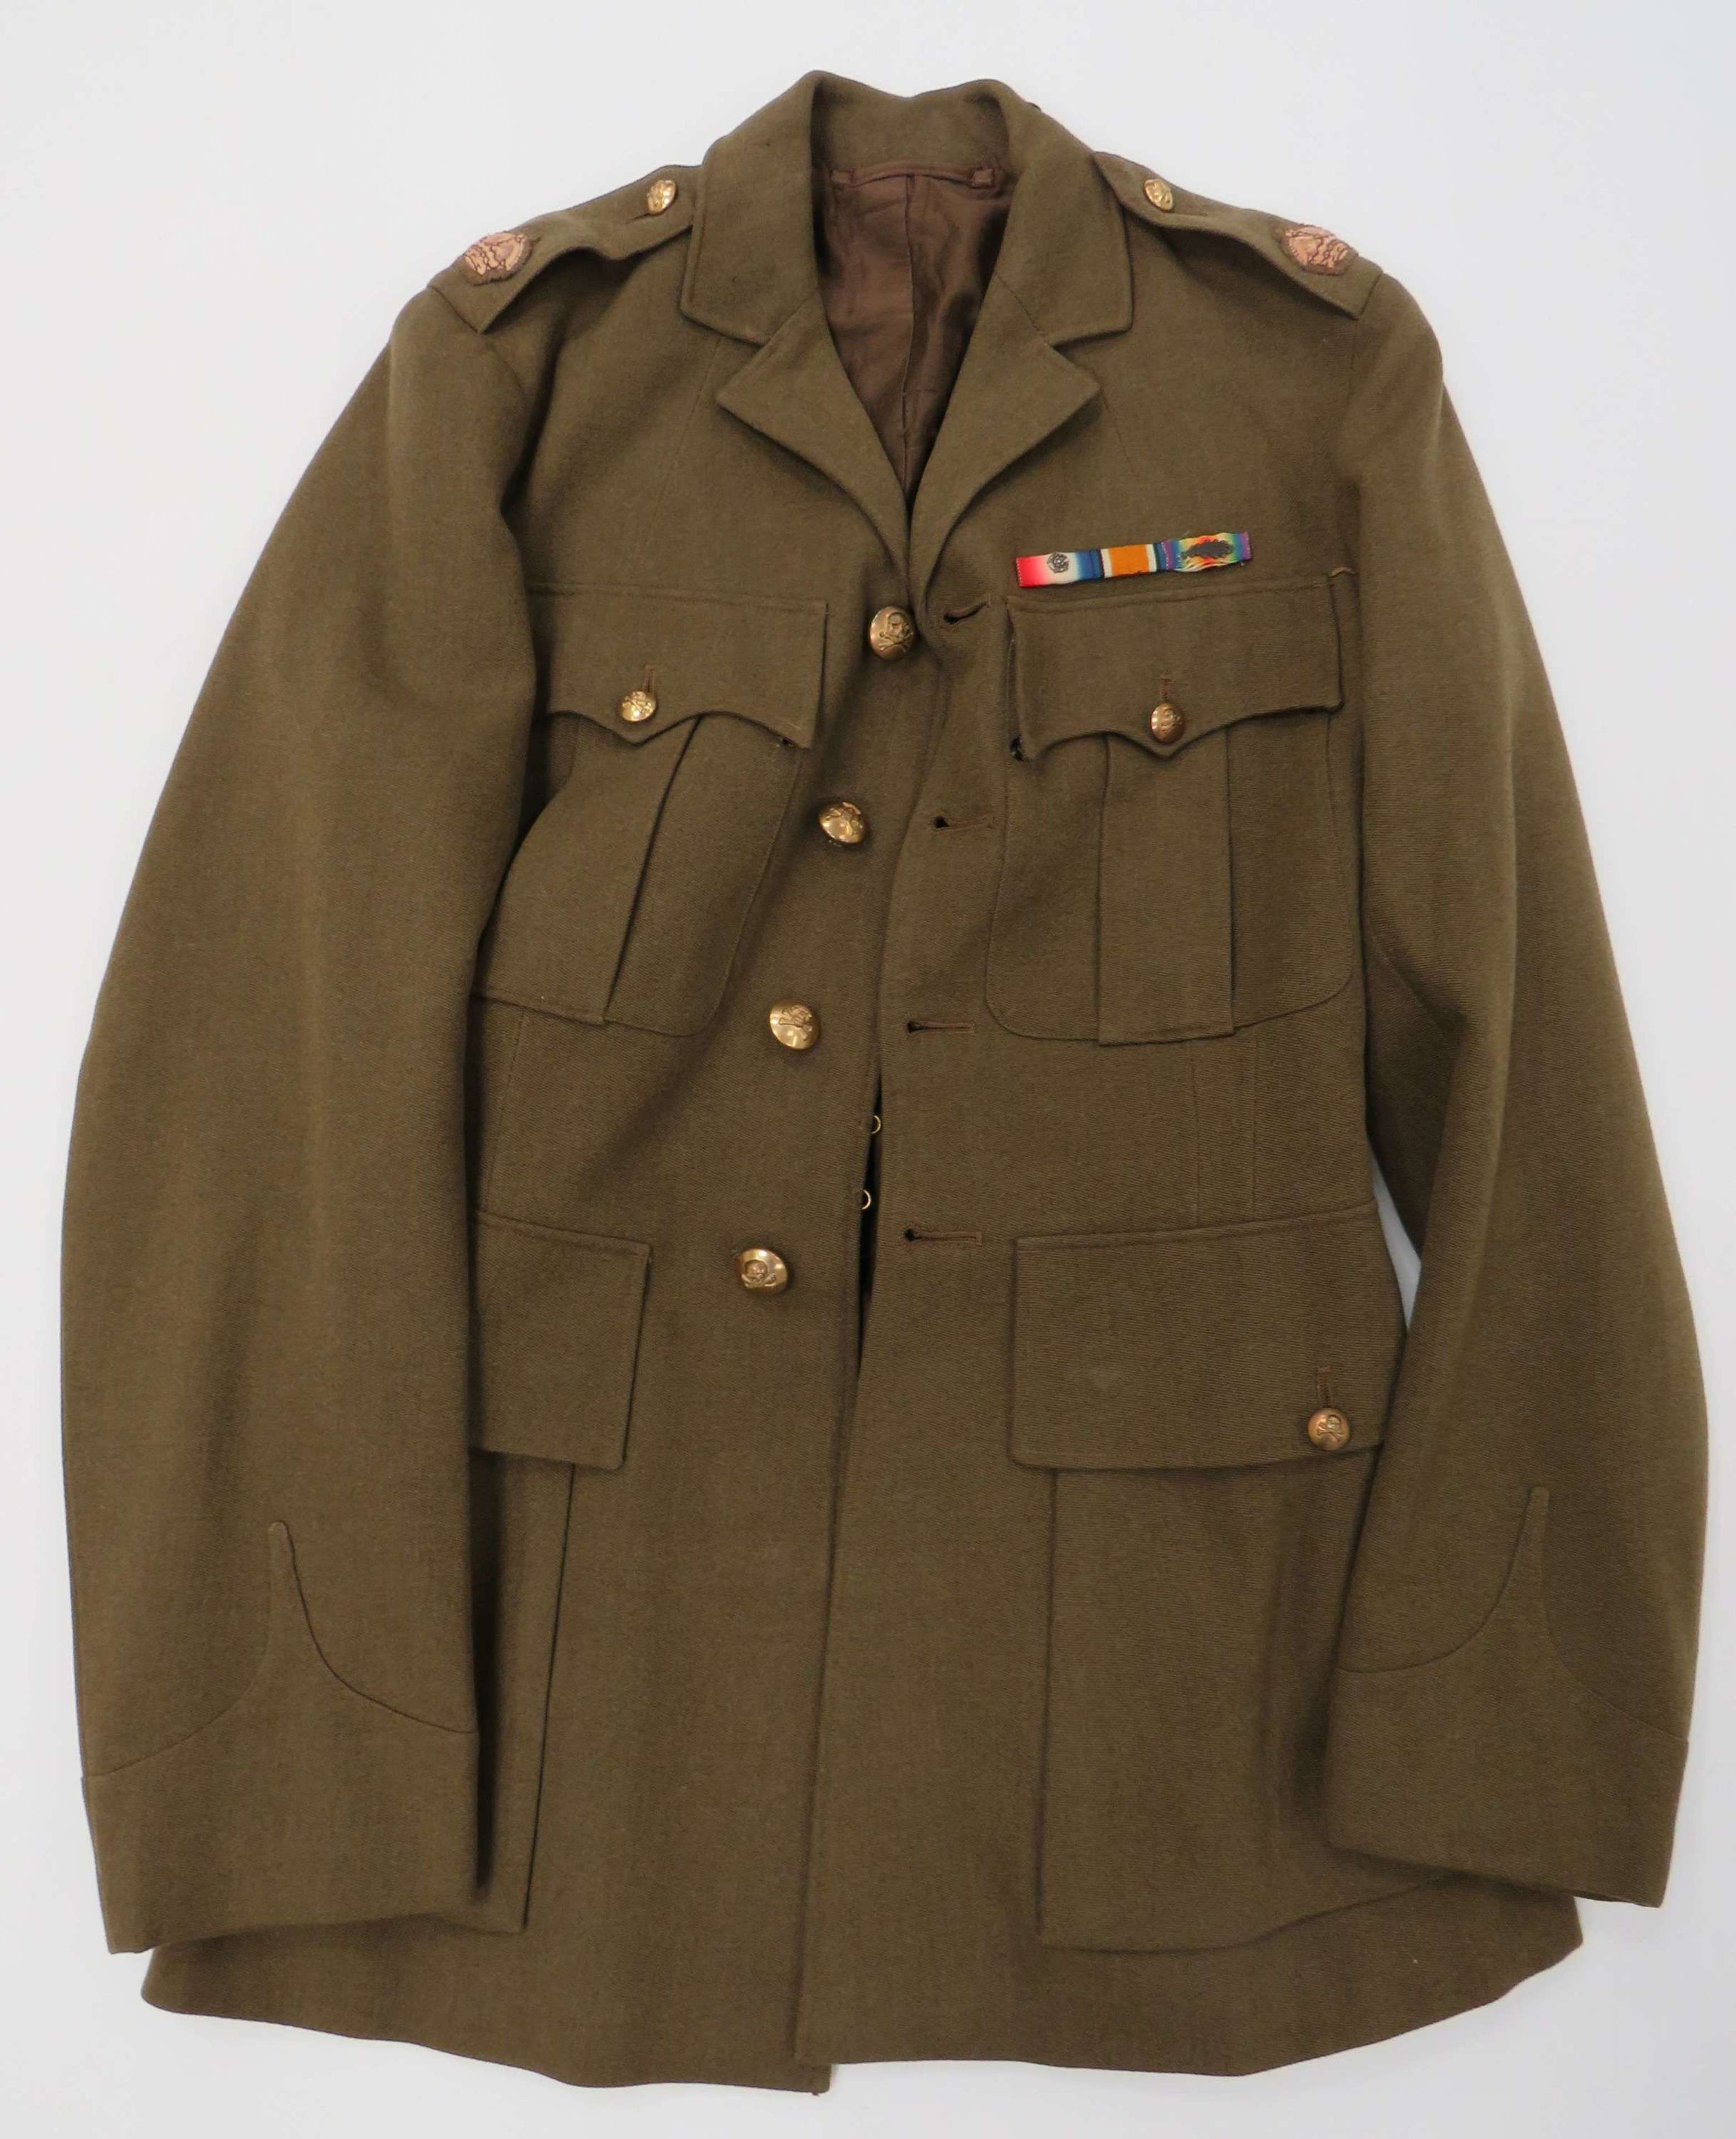 WW2 Officers 17/21st Lancers Service Dress Tunic